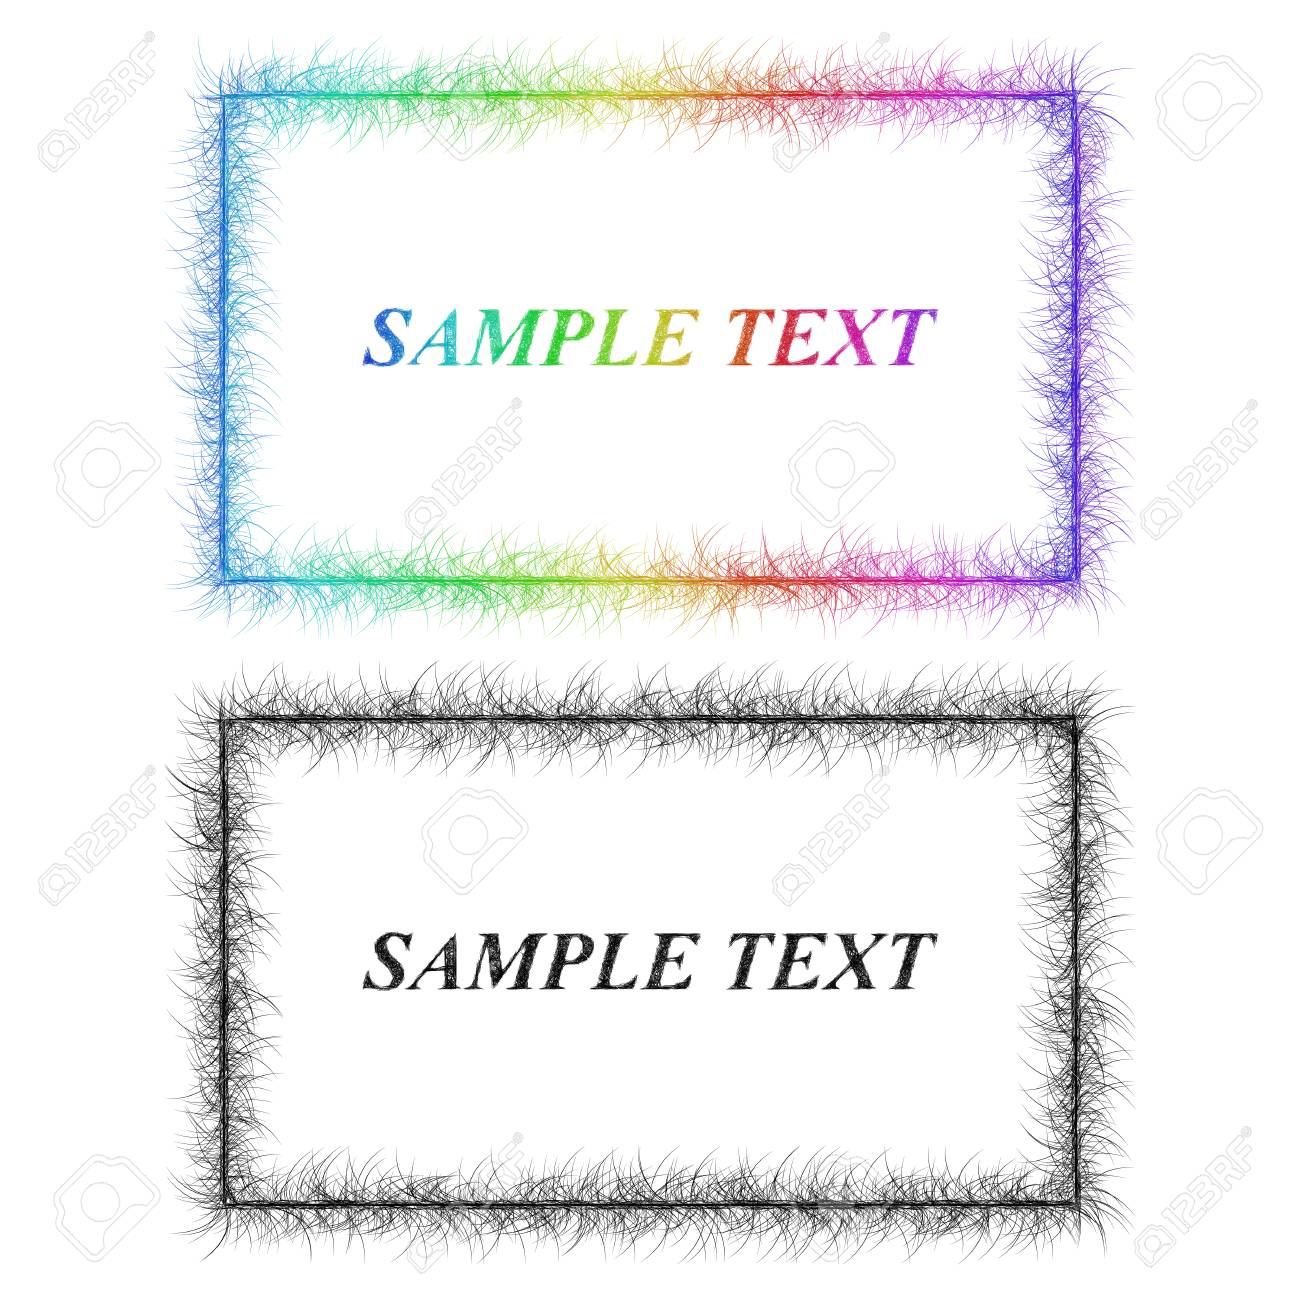 Colorful and black sketch business card frame designs royalty free colorful and black sketch business card frame designs stock vector 63667211 colourmoves